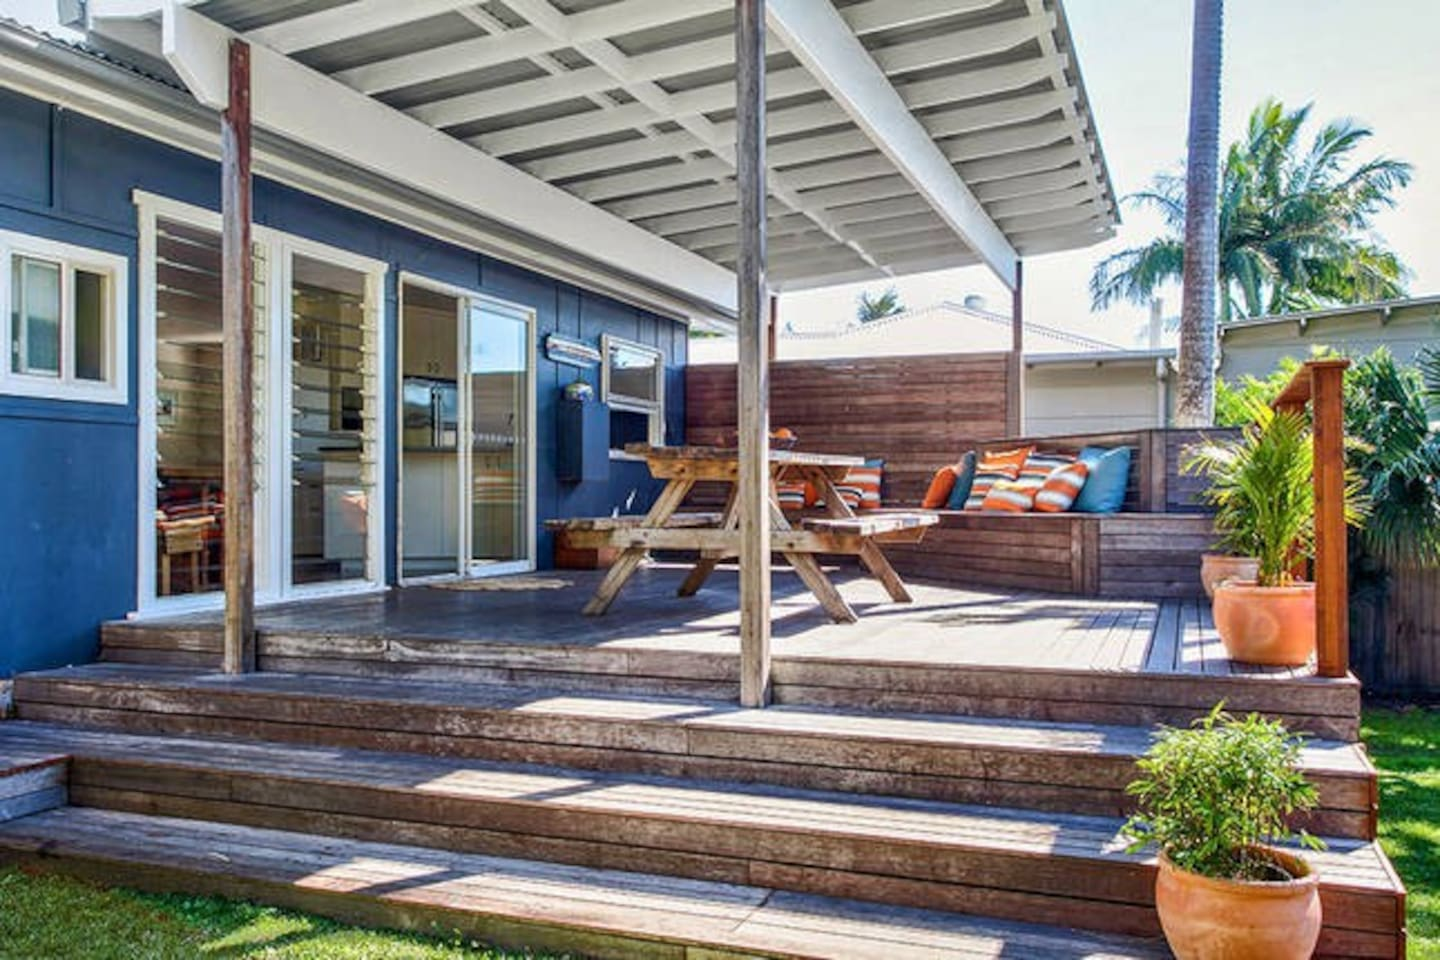 Covered north facing deck overlooking the back yard. Perfect for outdoor dining or relaxing.